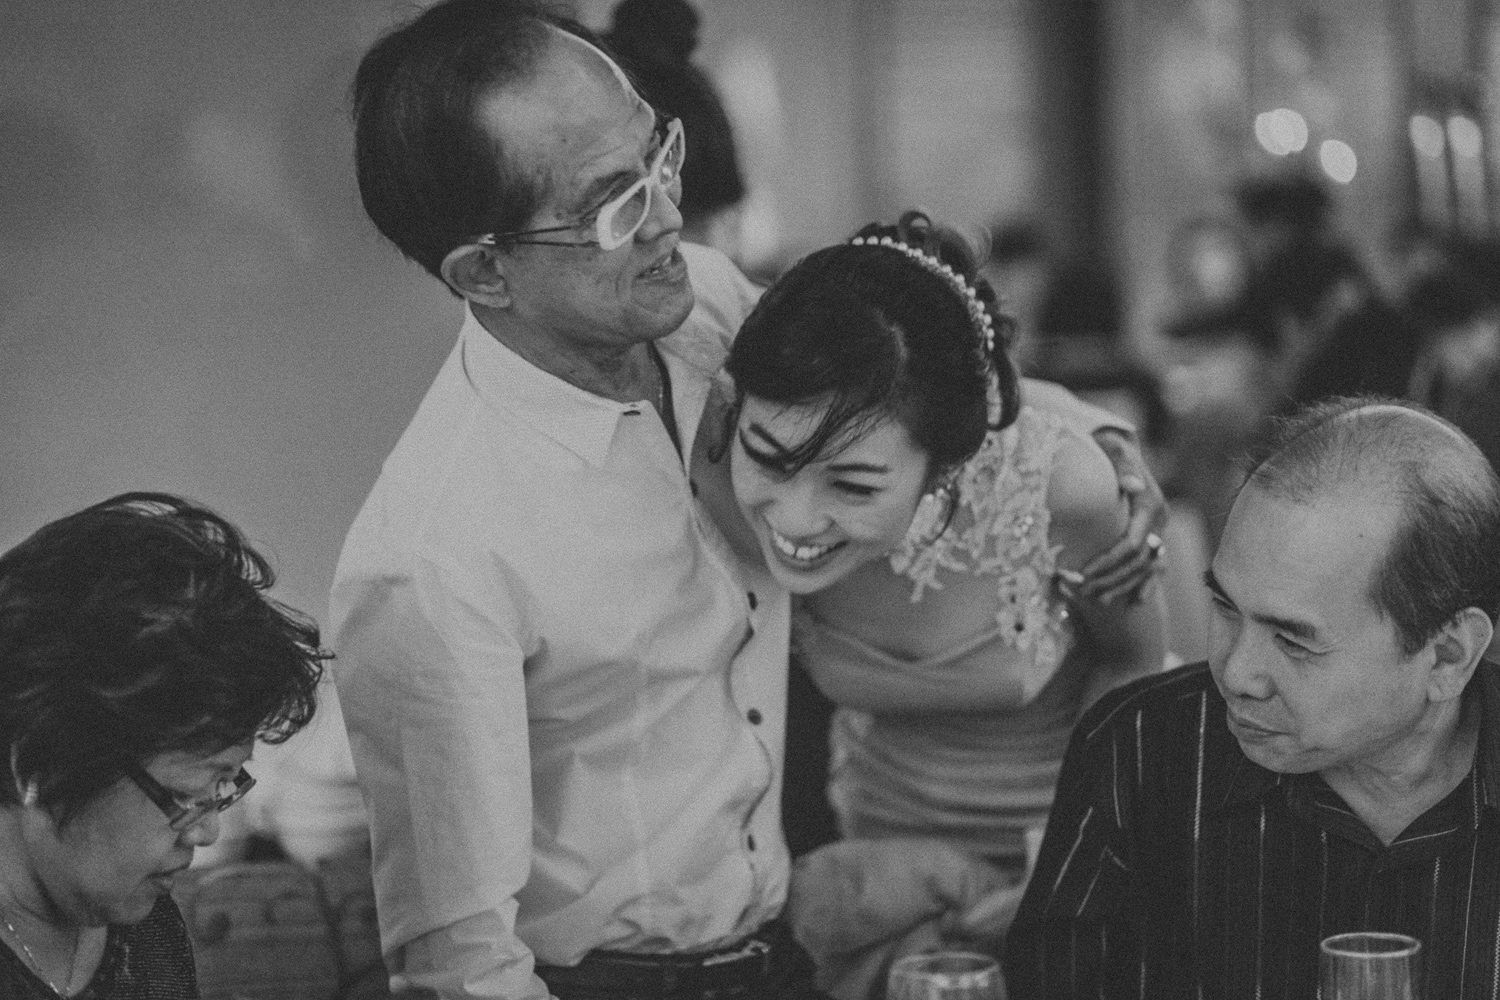 bittersweet photography Singapore wedding photographer jonathan 117